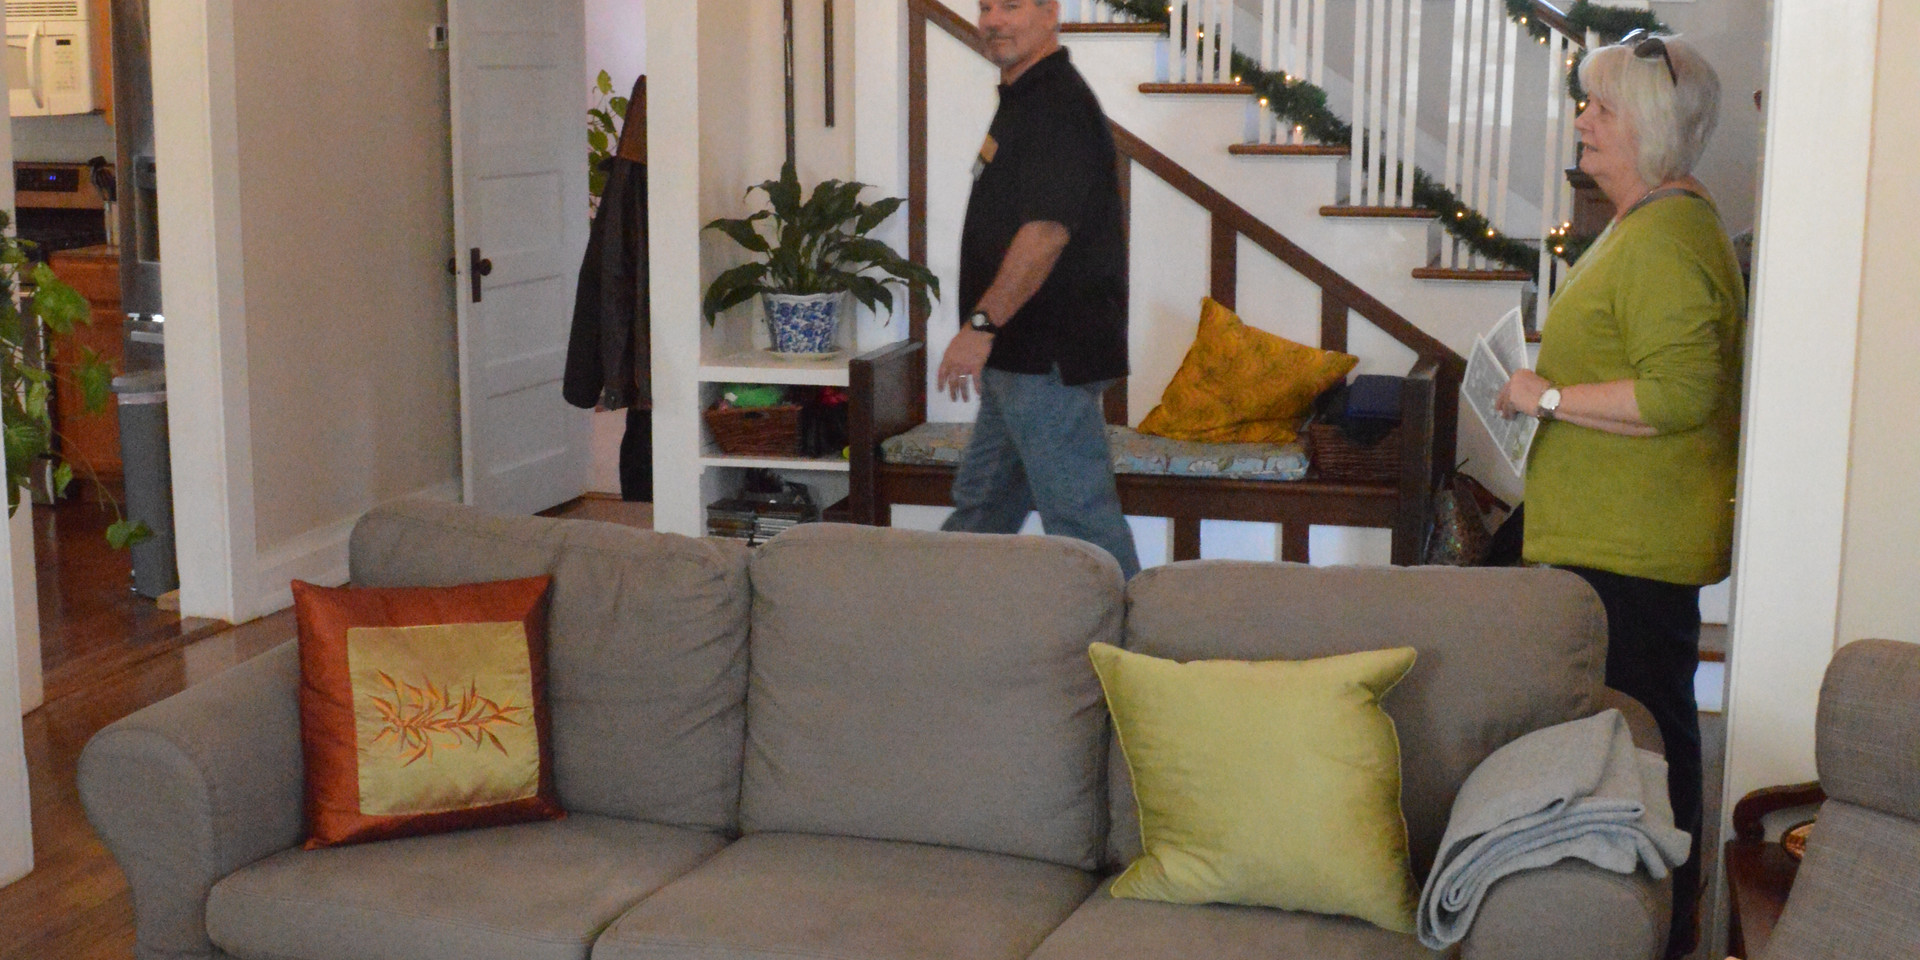 HomeTour2019_081.JPG